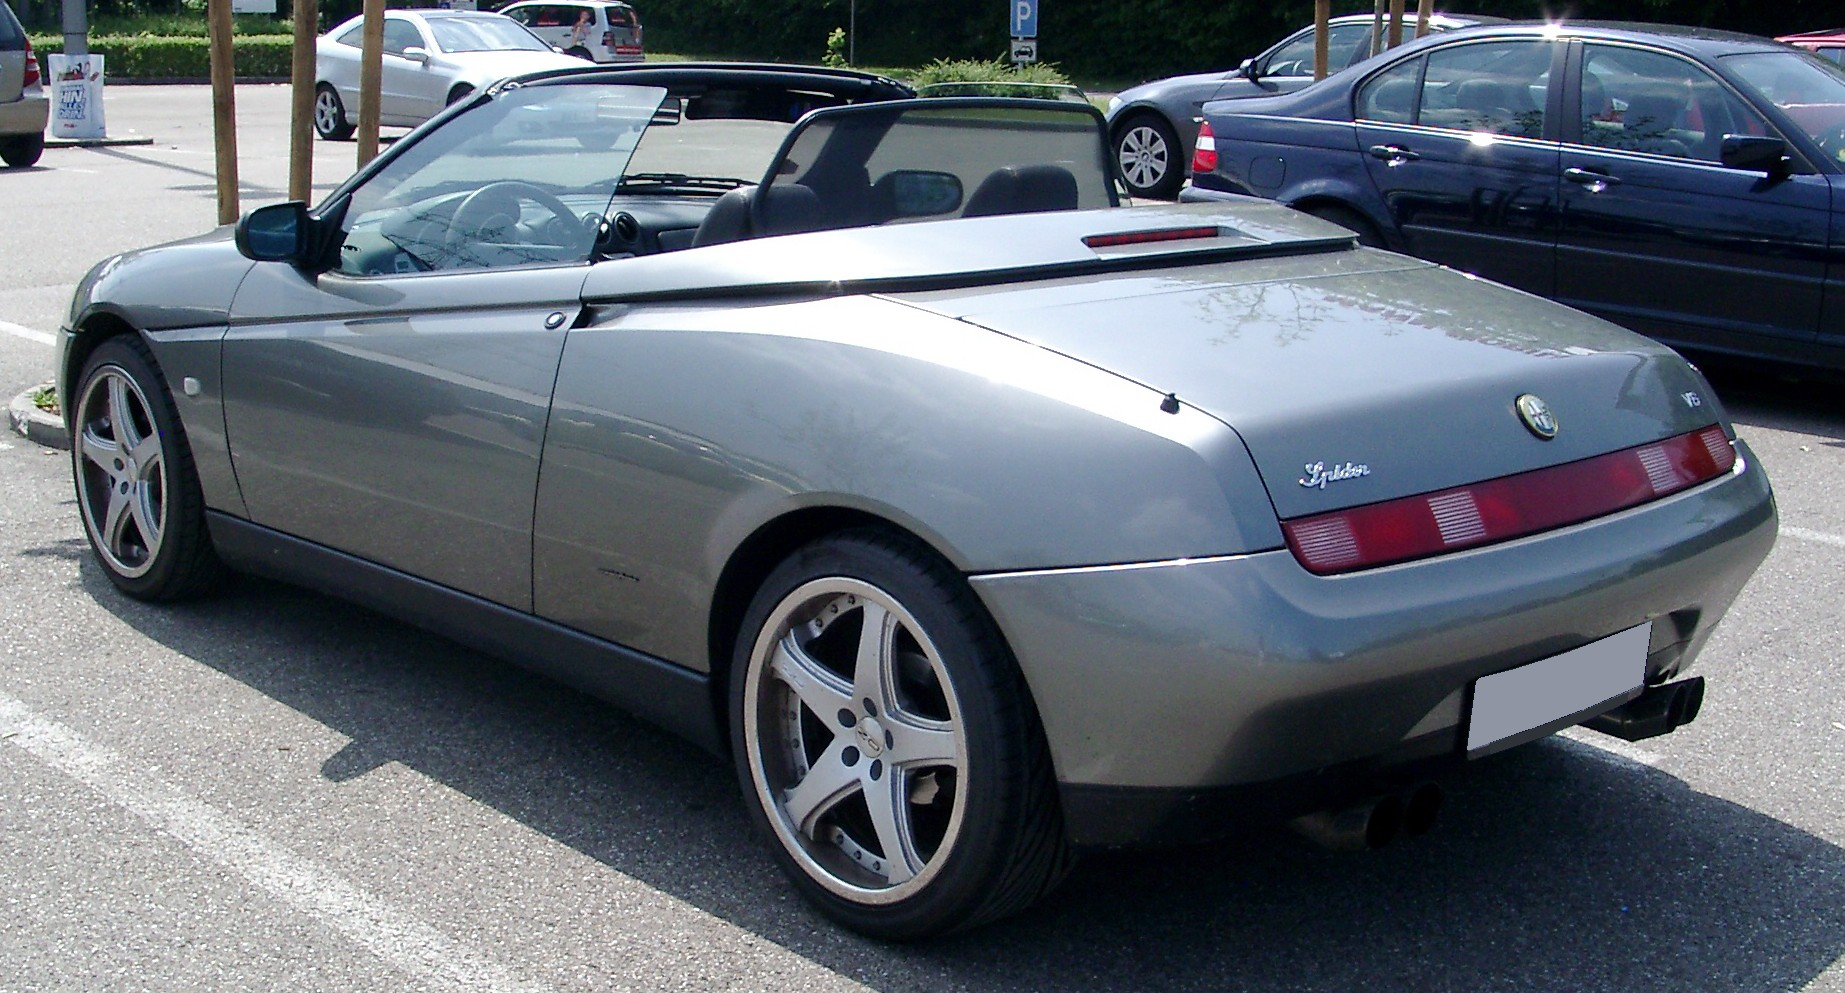 2000 alfa romeo spider (916) \u2013 pictures, information and specspictures of alfa romeo spider (916) 2000 3